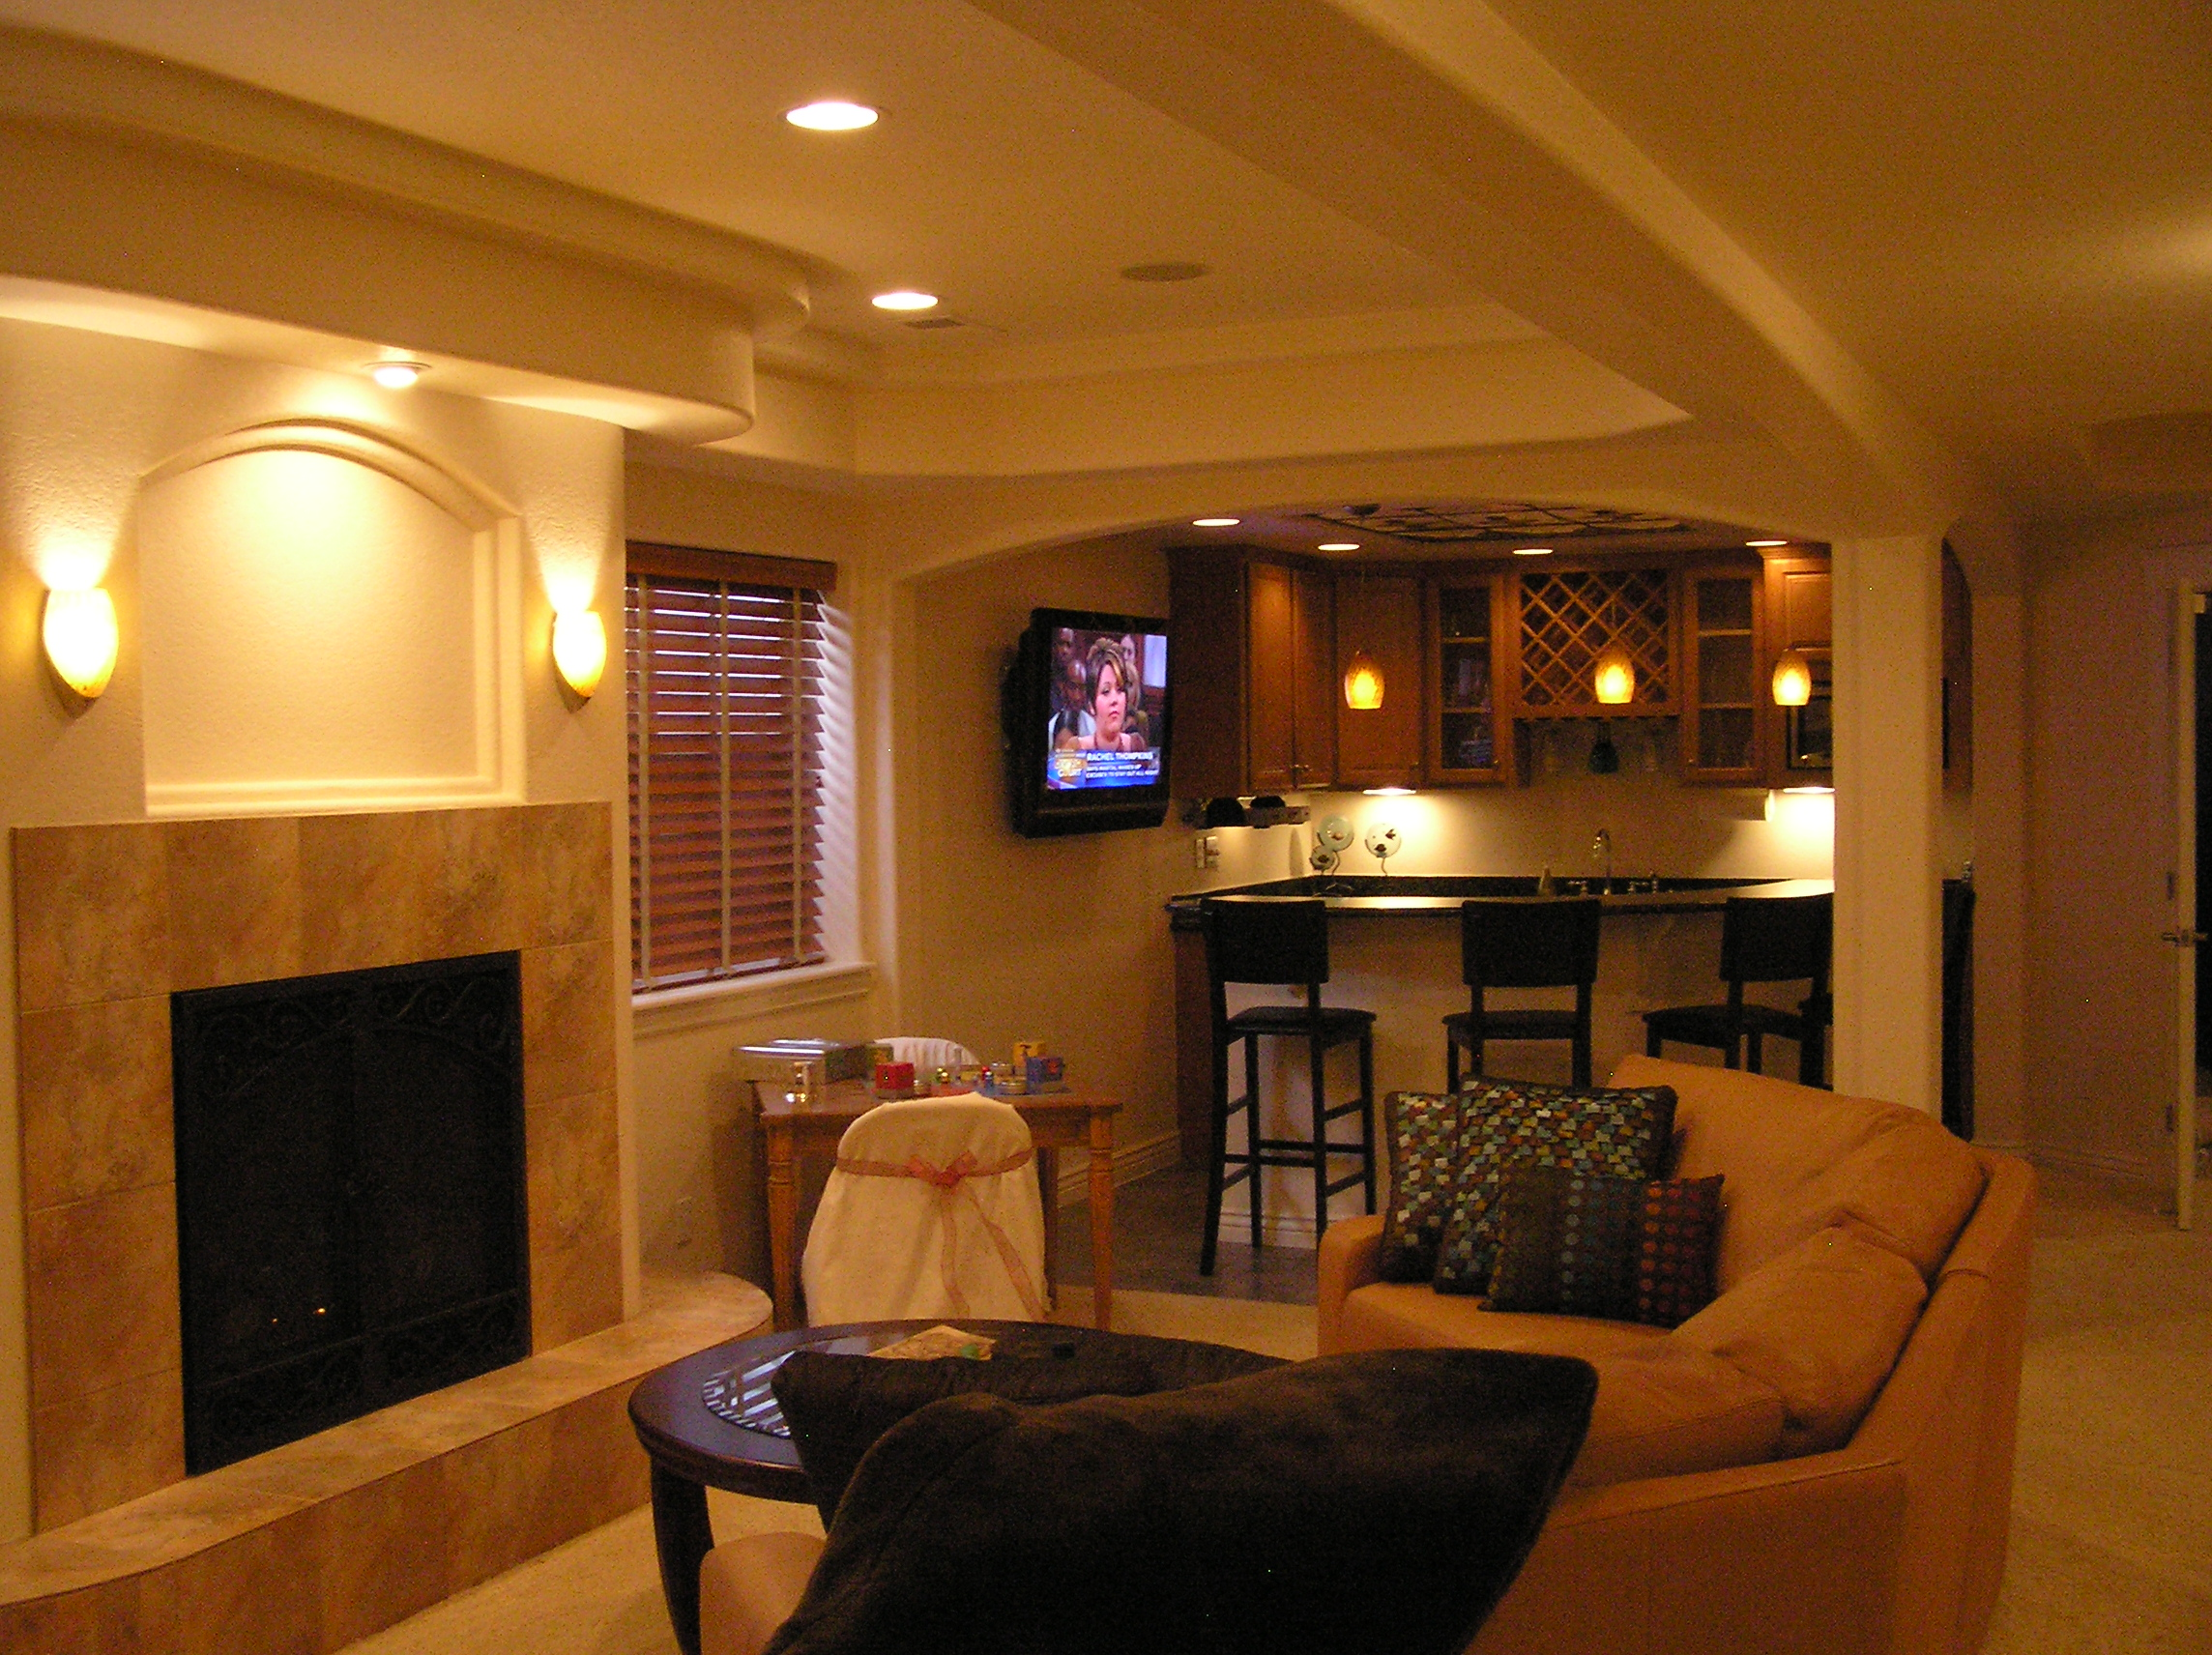 Basement design photos home decoration live - Basement design ideas photos ...